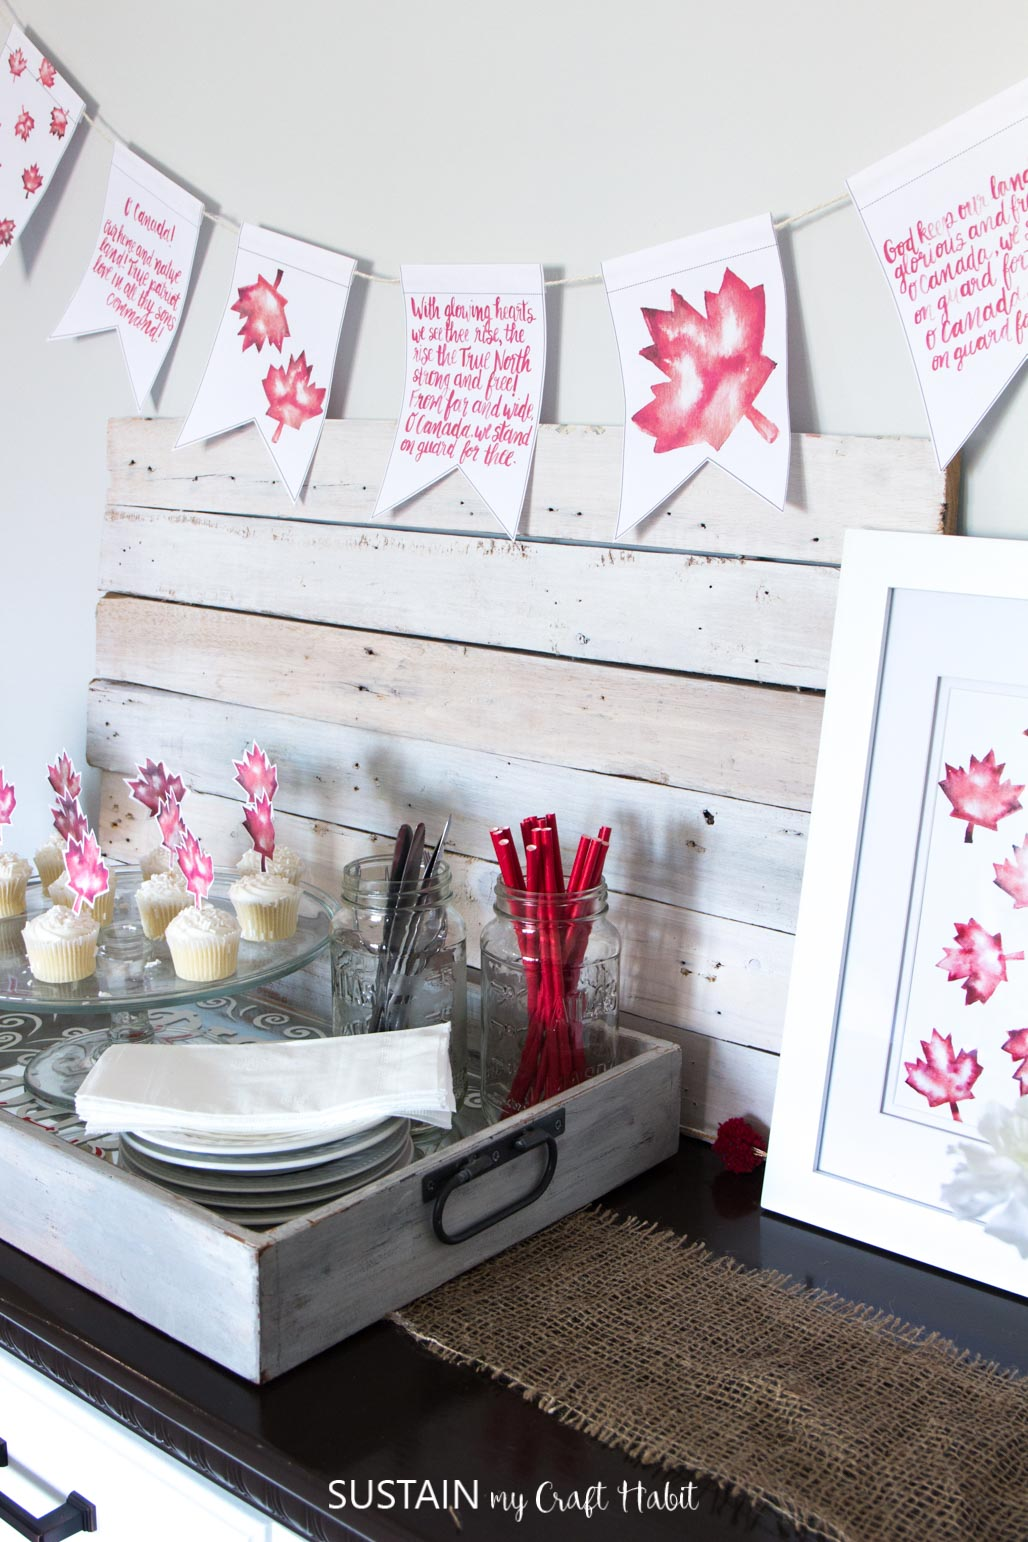 Free Printable Canada Day Decorating Ideas 2013 Sustain My Craft Habit